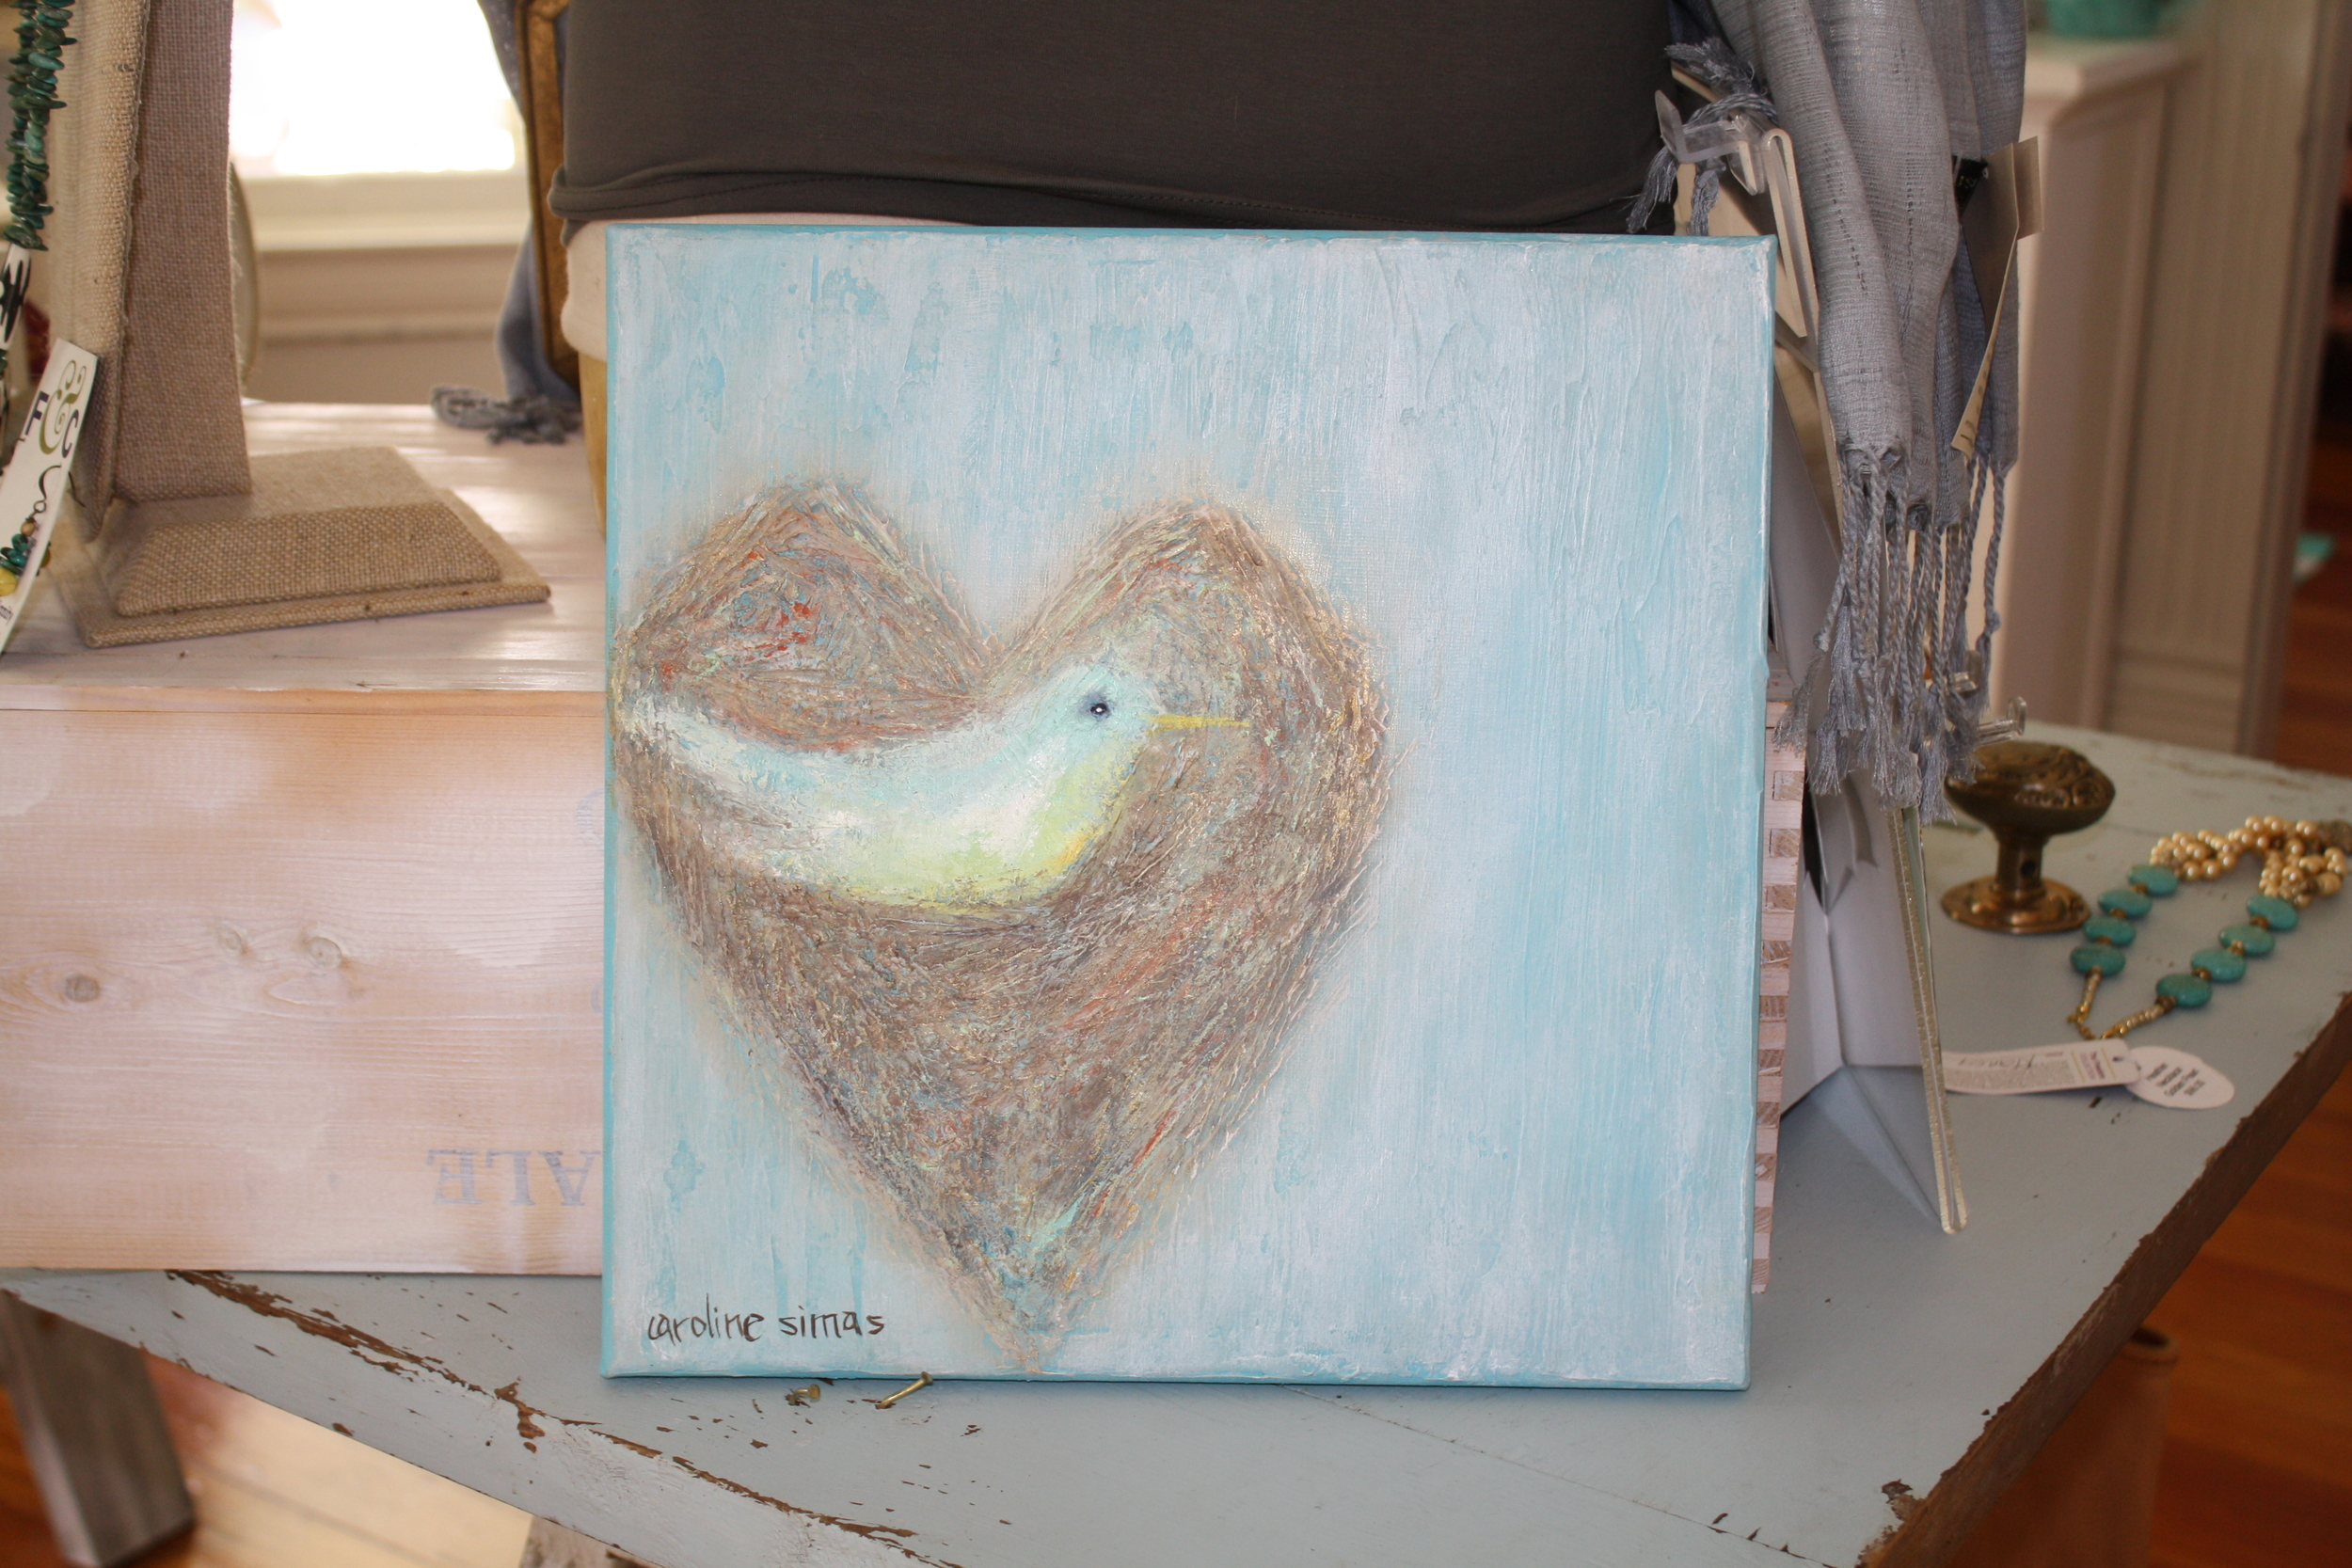 Such sweet symbolism in this painting of a sweet little bird enclosed in a heart.